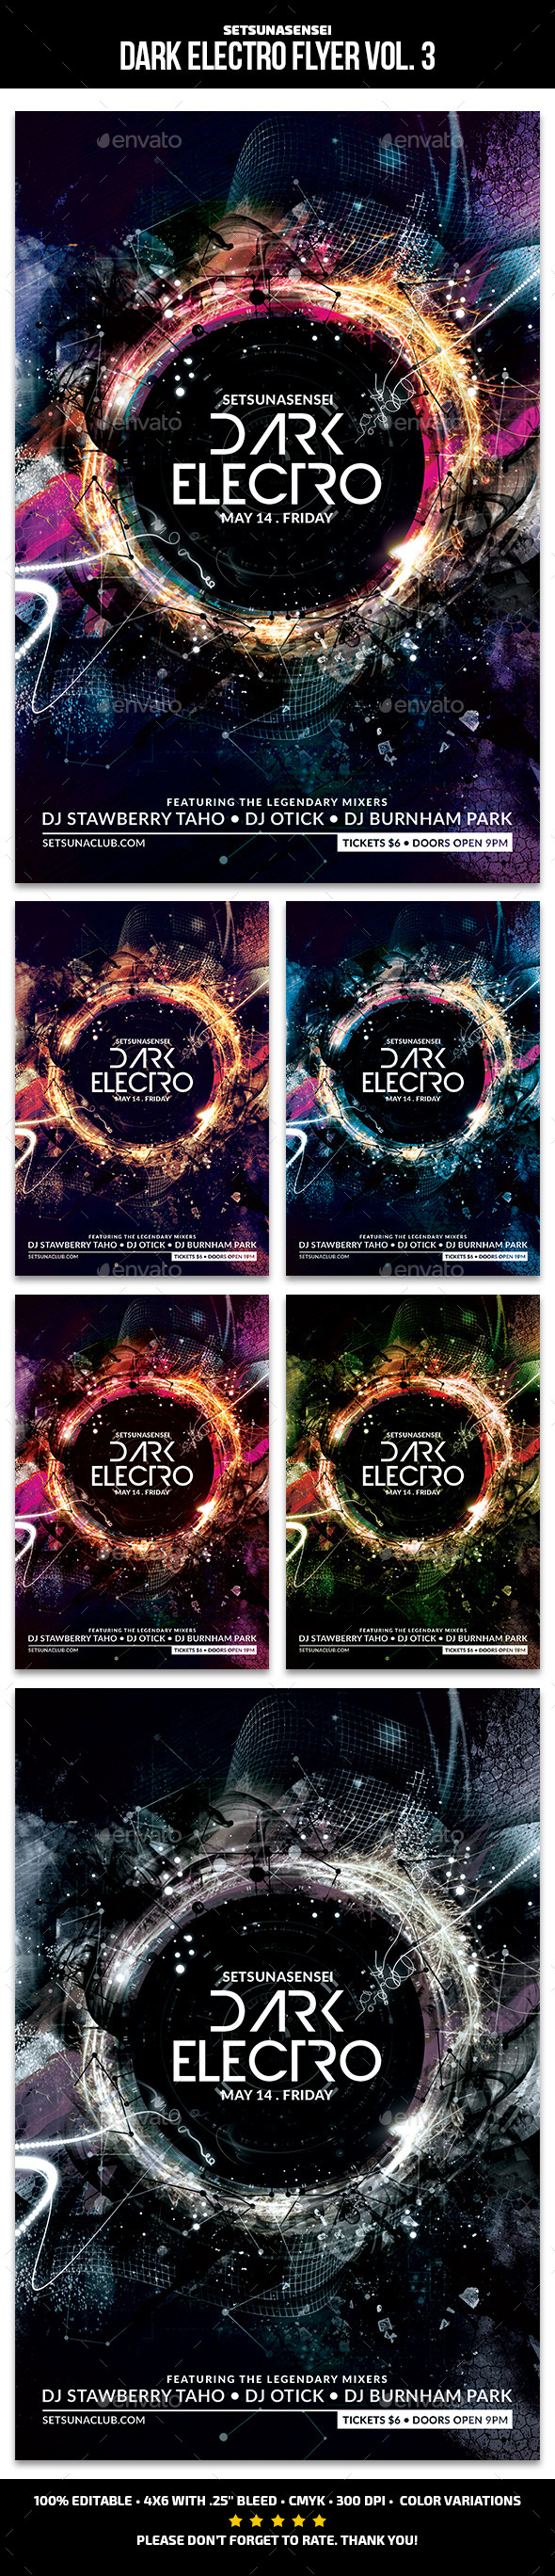 GraphicRiver Dark Electro Flyer Vol 3 11913524